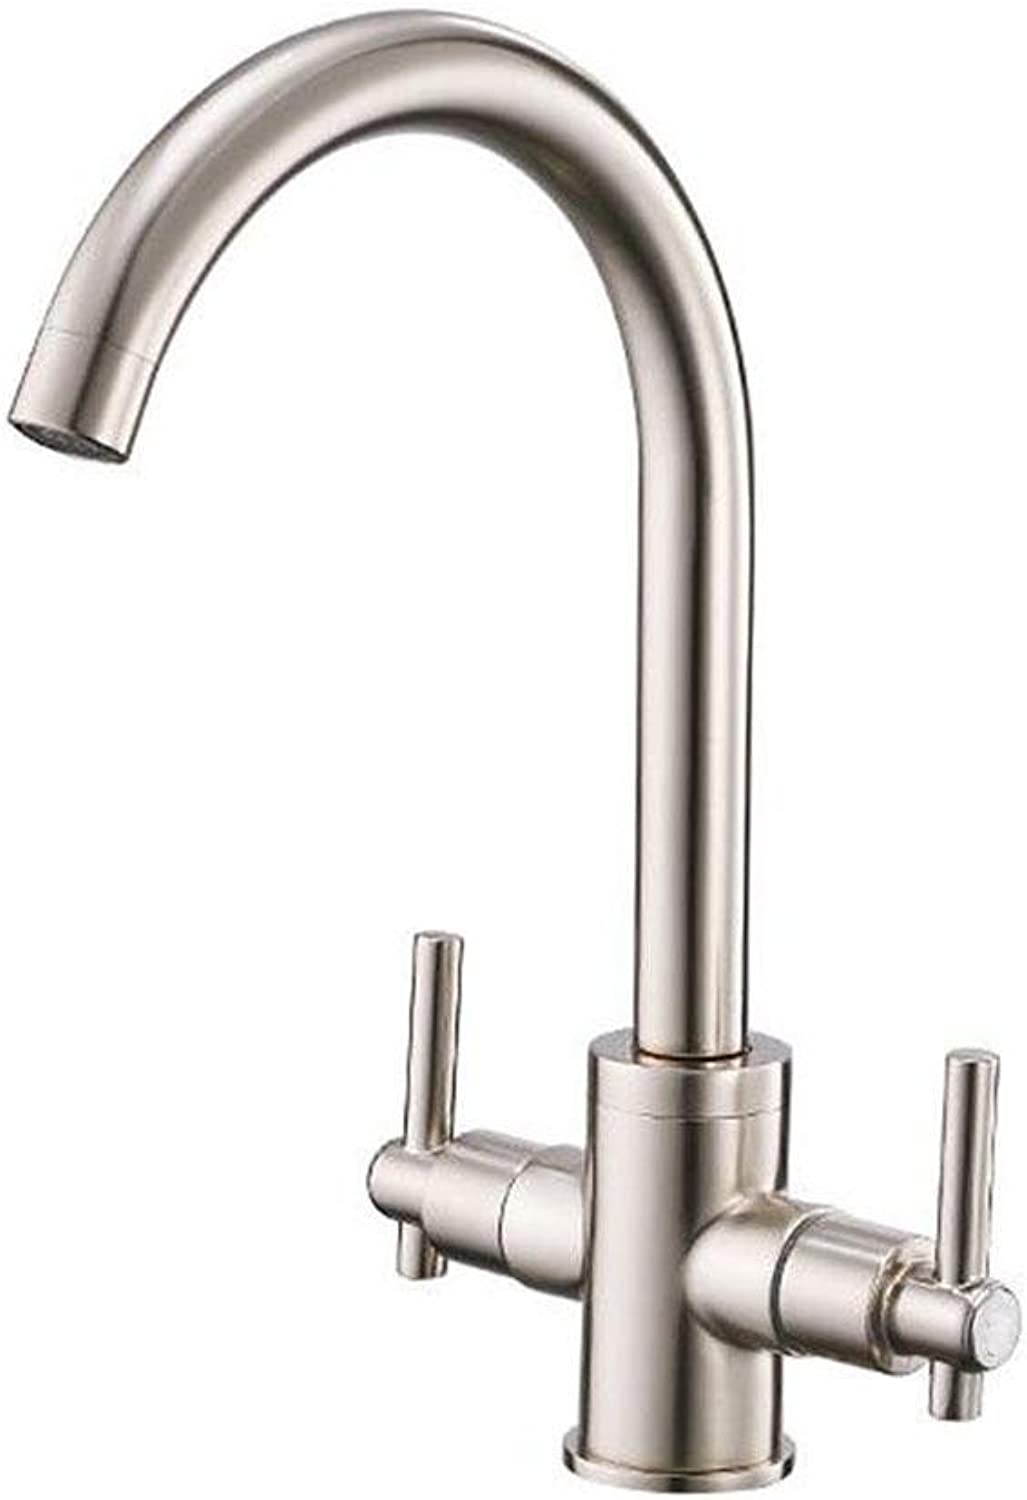 Double Handle Kitchen Faucet Chrome Brushed Kitchen Sink Hot and cold mixed water Tap